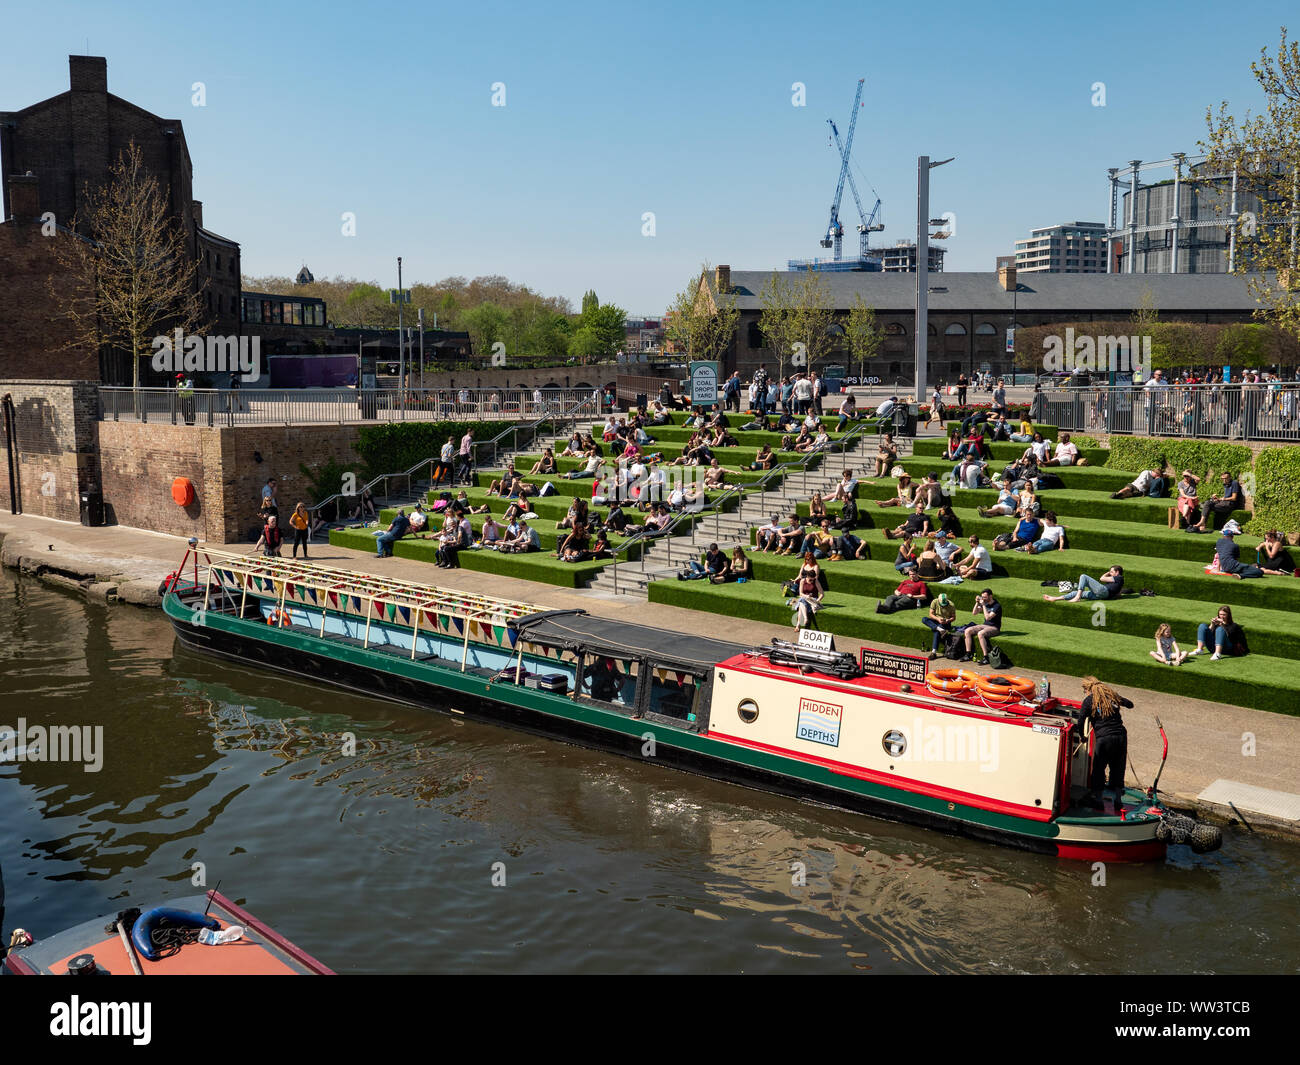 Regent's Canal at Granary Square, King's Cross, London, UK Stock Photo